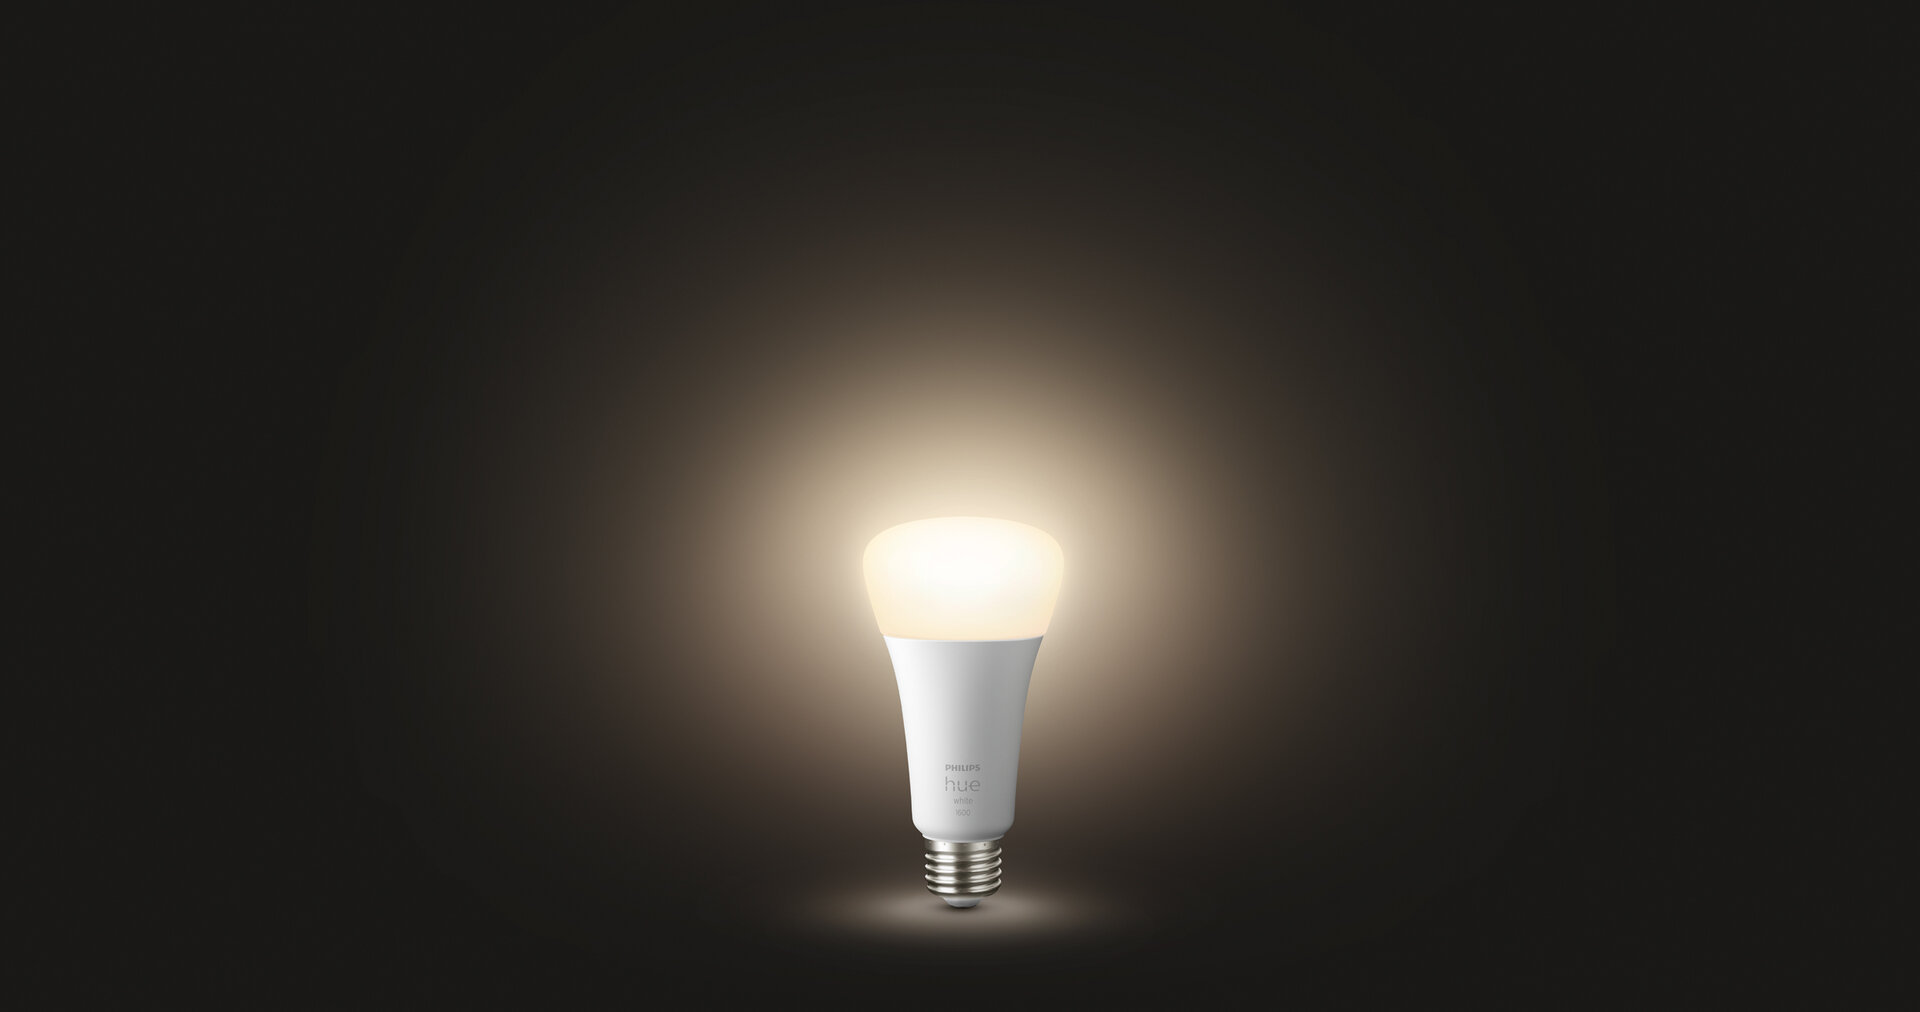 Philips Hue White 1600lm